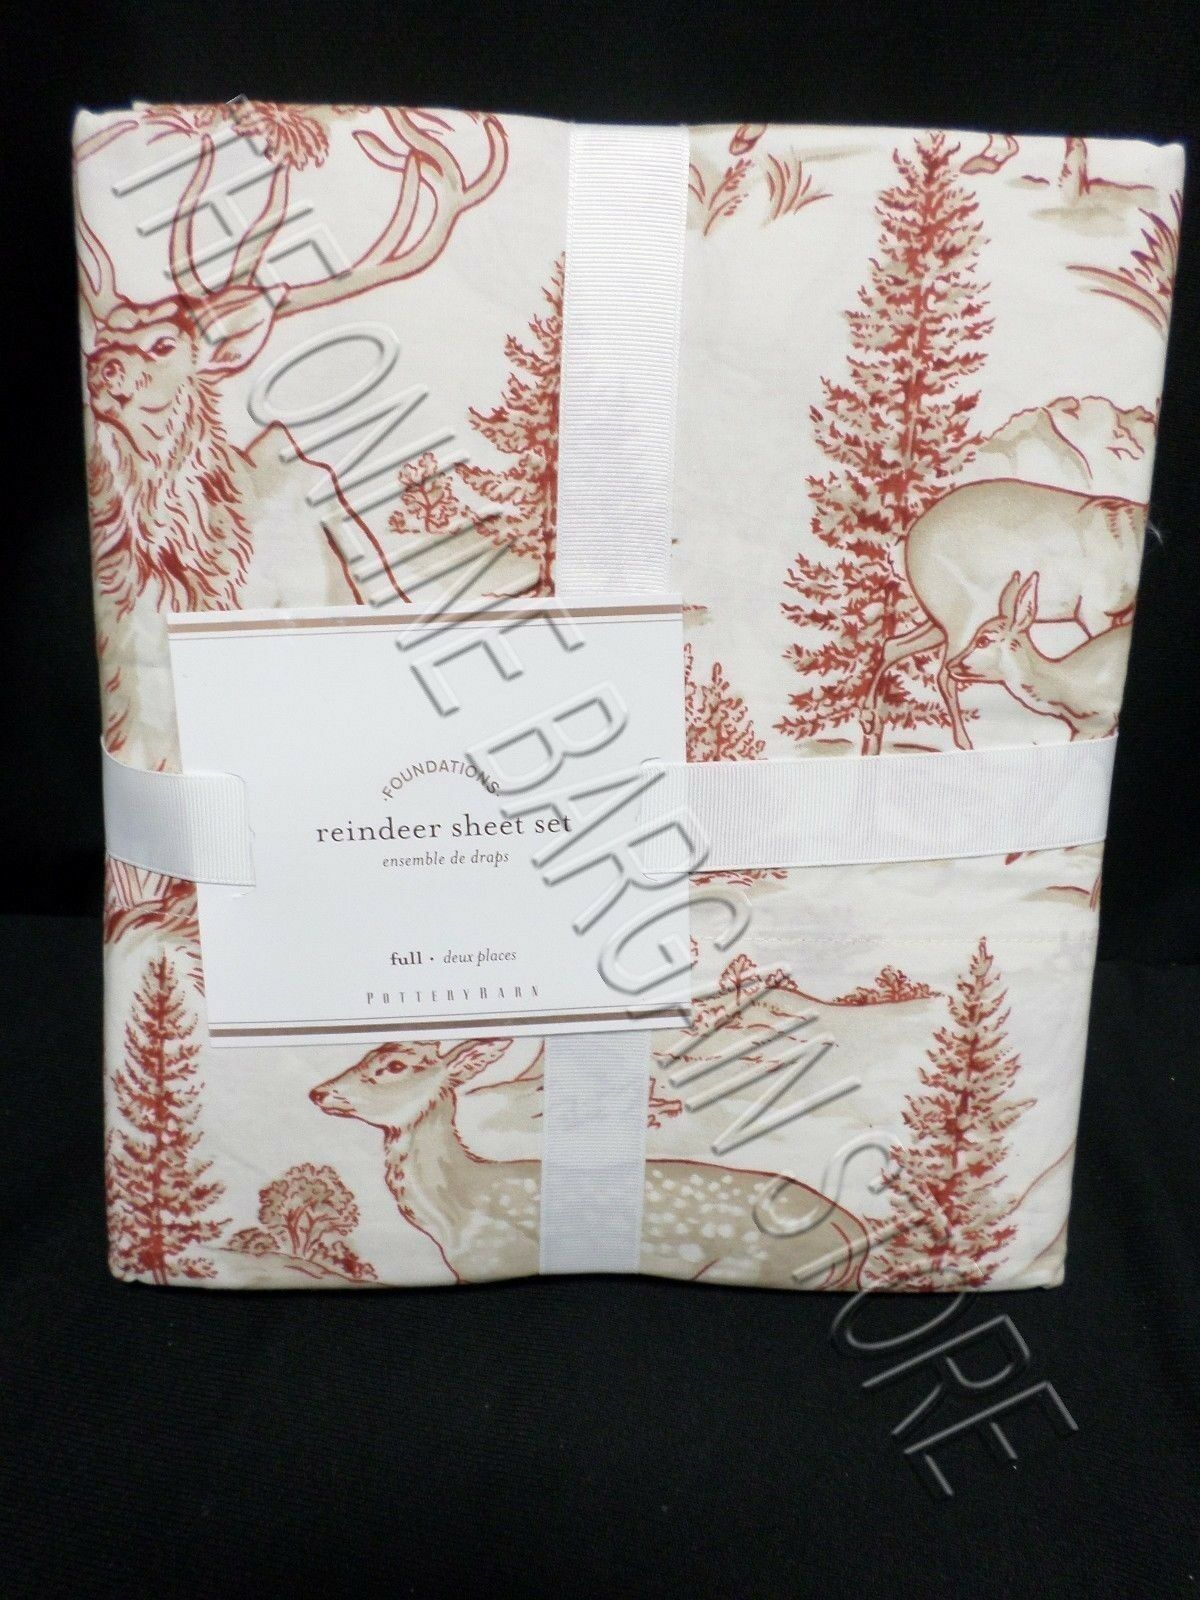 Pottery Barn Christmas Holiday Reindeer Winter Sketch Scene Bed Sheets Set Full